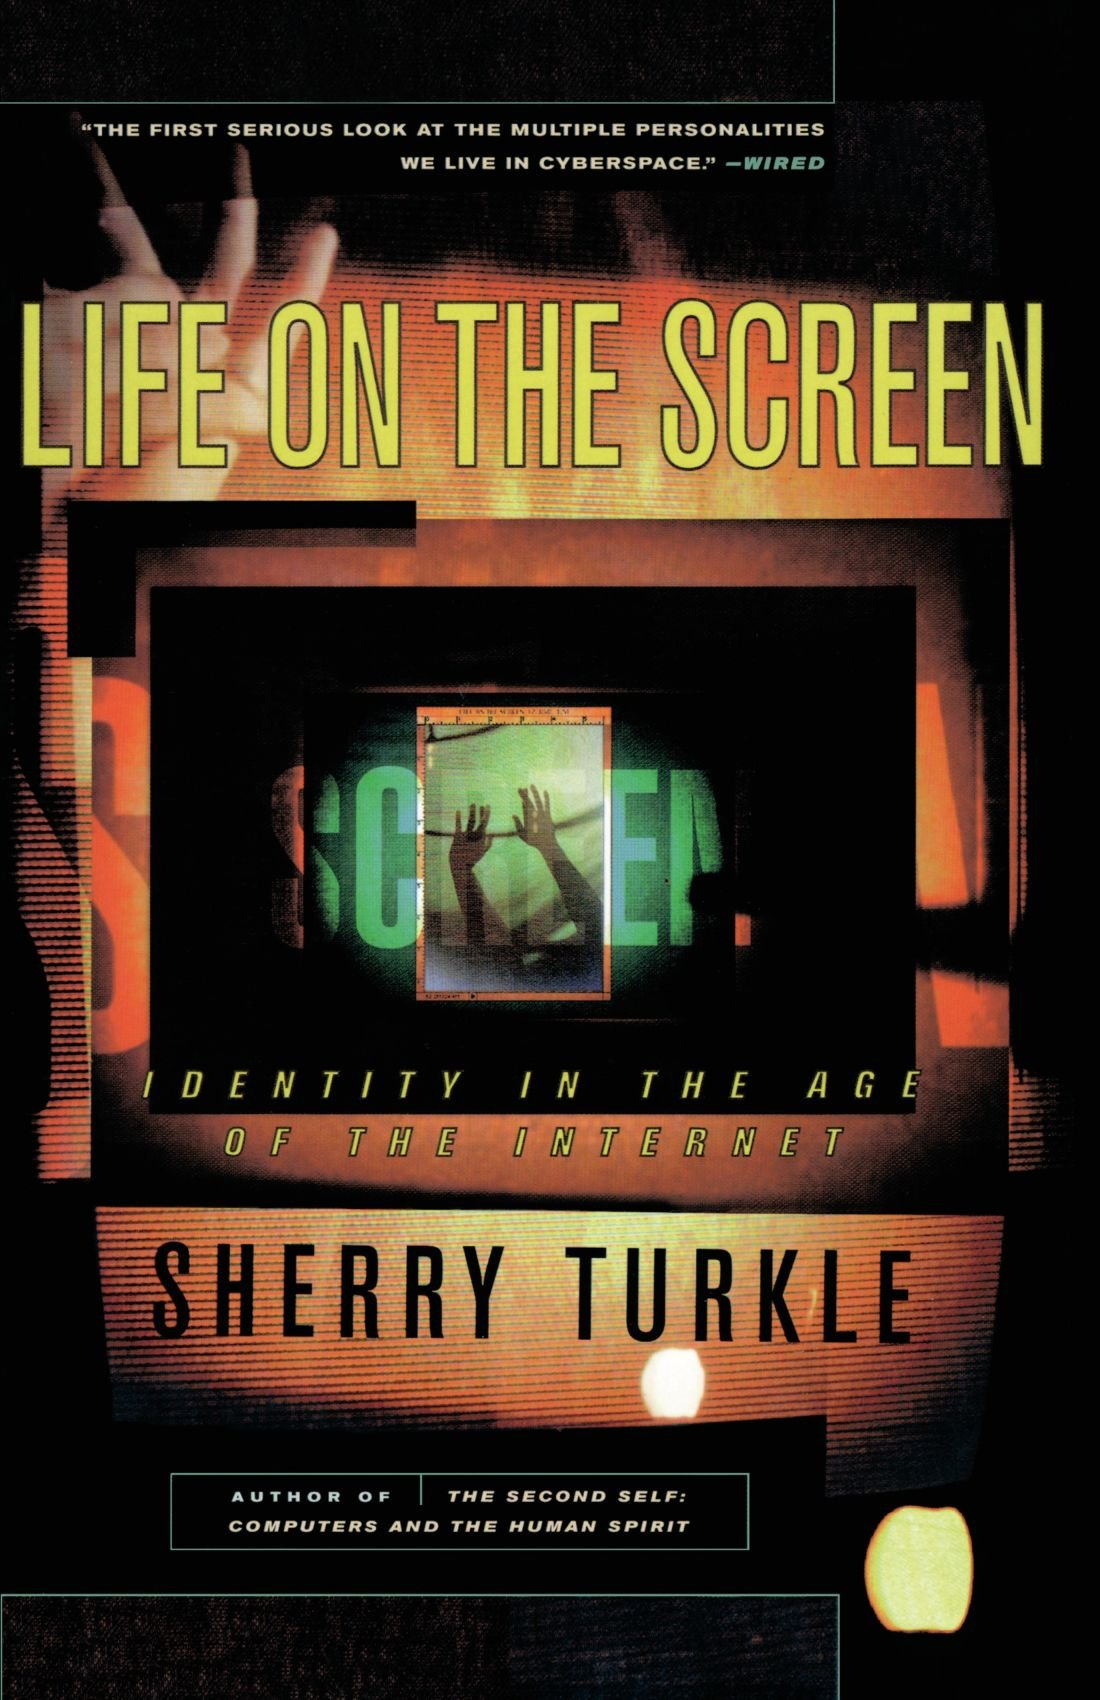 Life on the Screen: Identity in the Age of the Internet: Amazon.es: Sherry Turkle: Libros en idiomas extranjeros